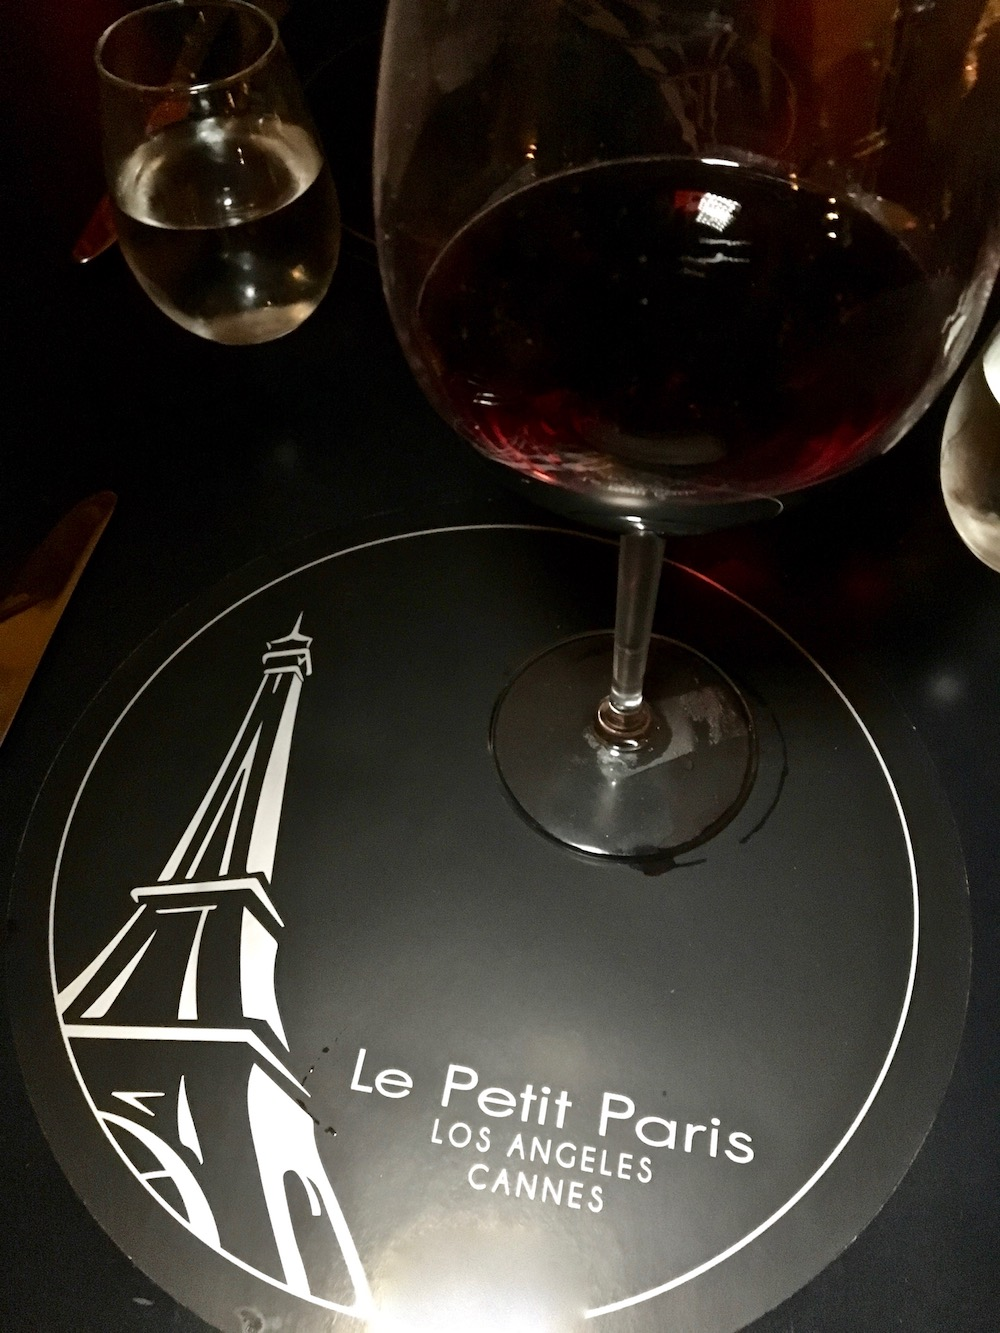 Le Petit Paris French Restaurant.jpg